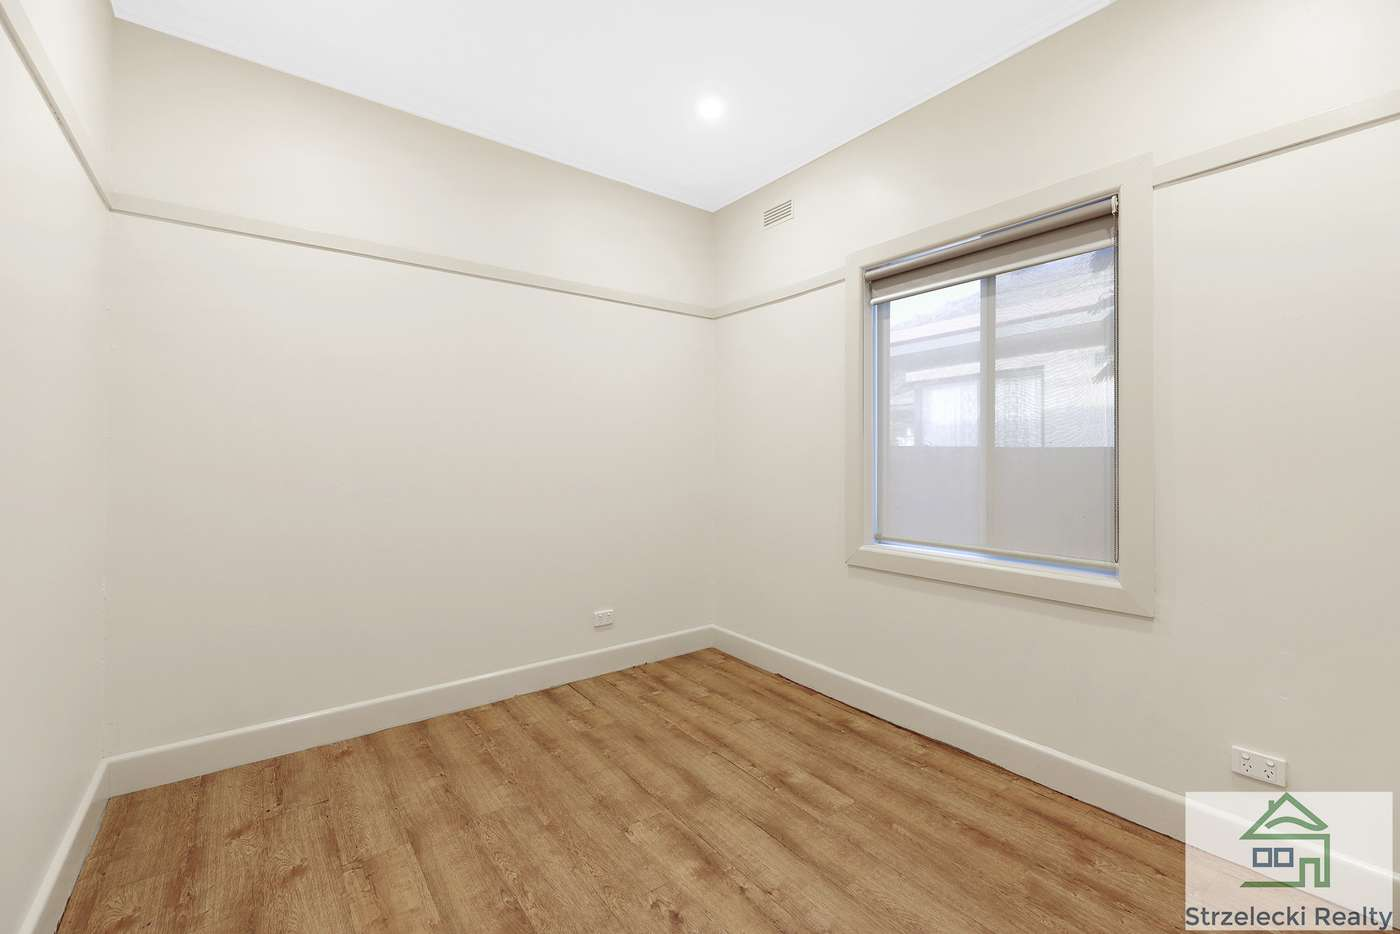 Seventh view of Homely house listing, 23 Mcdonald St, Morwell VIC 3840